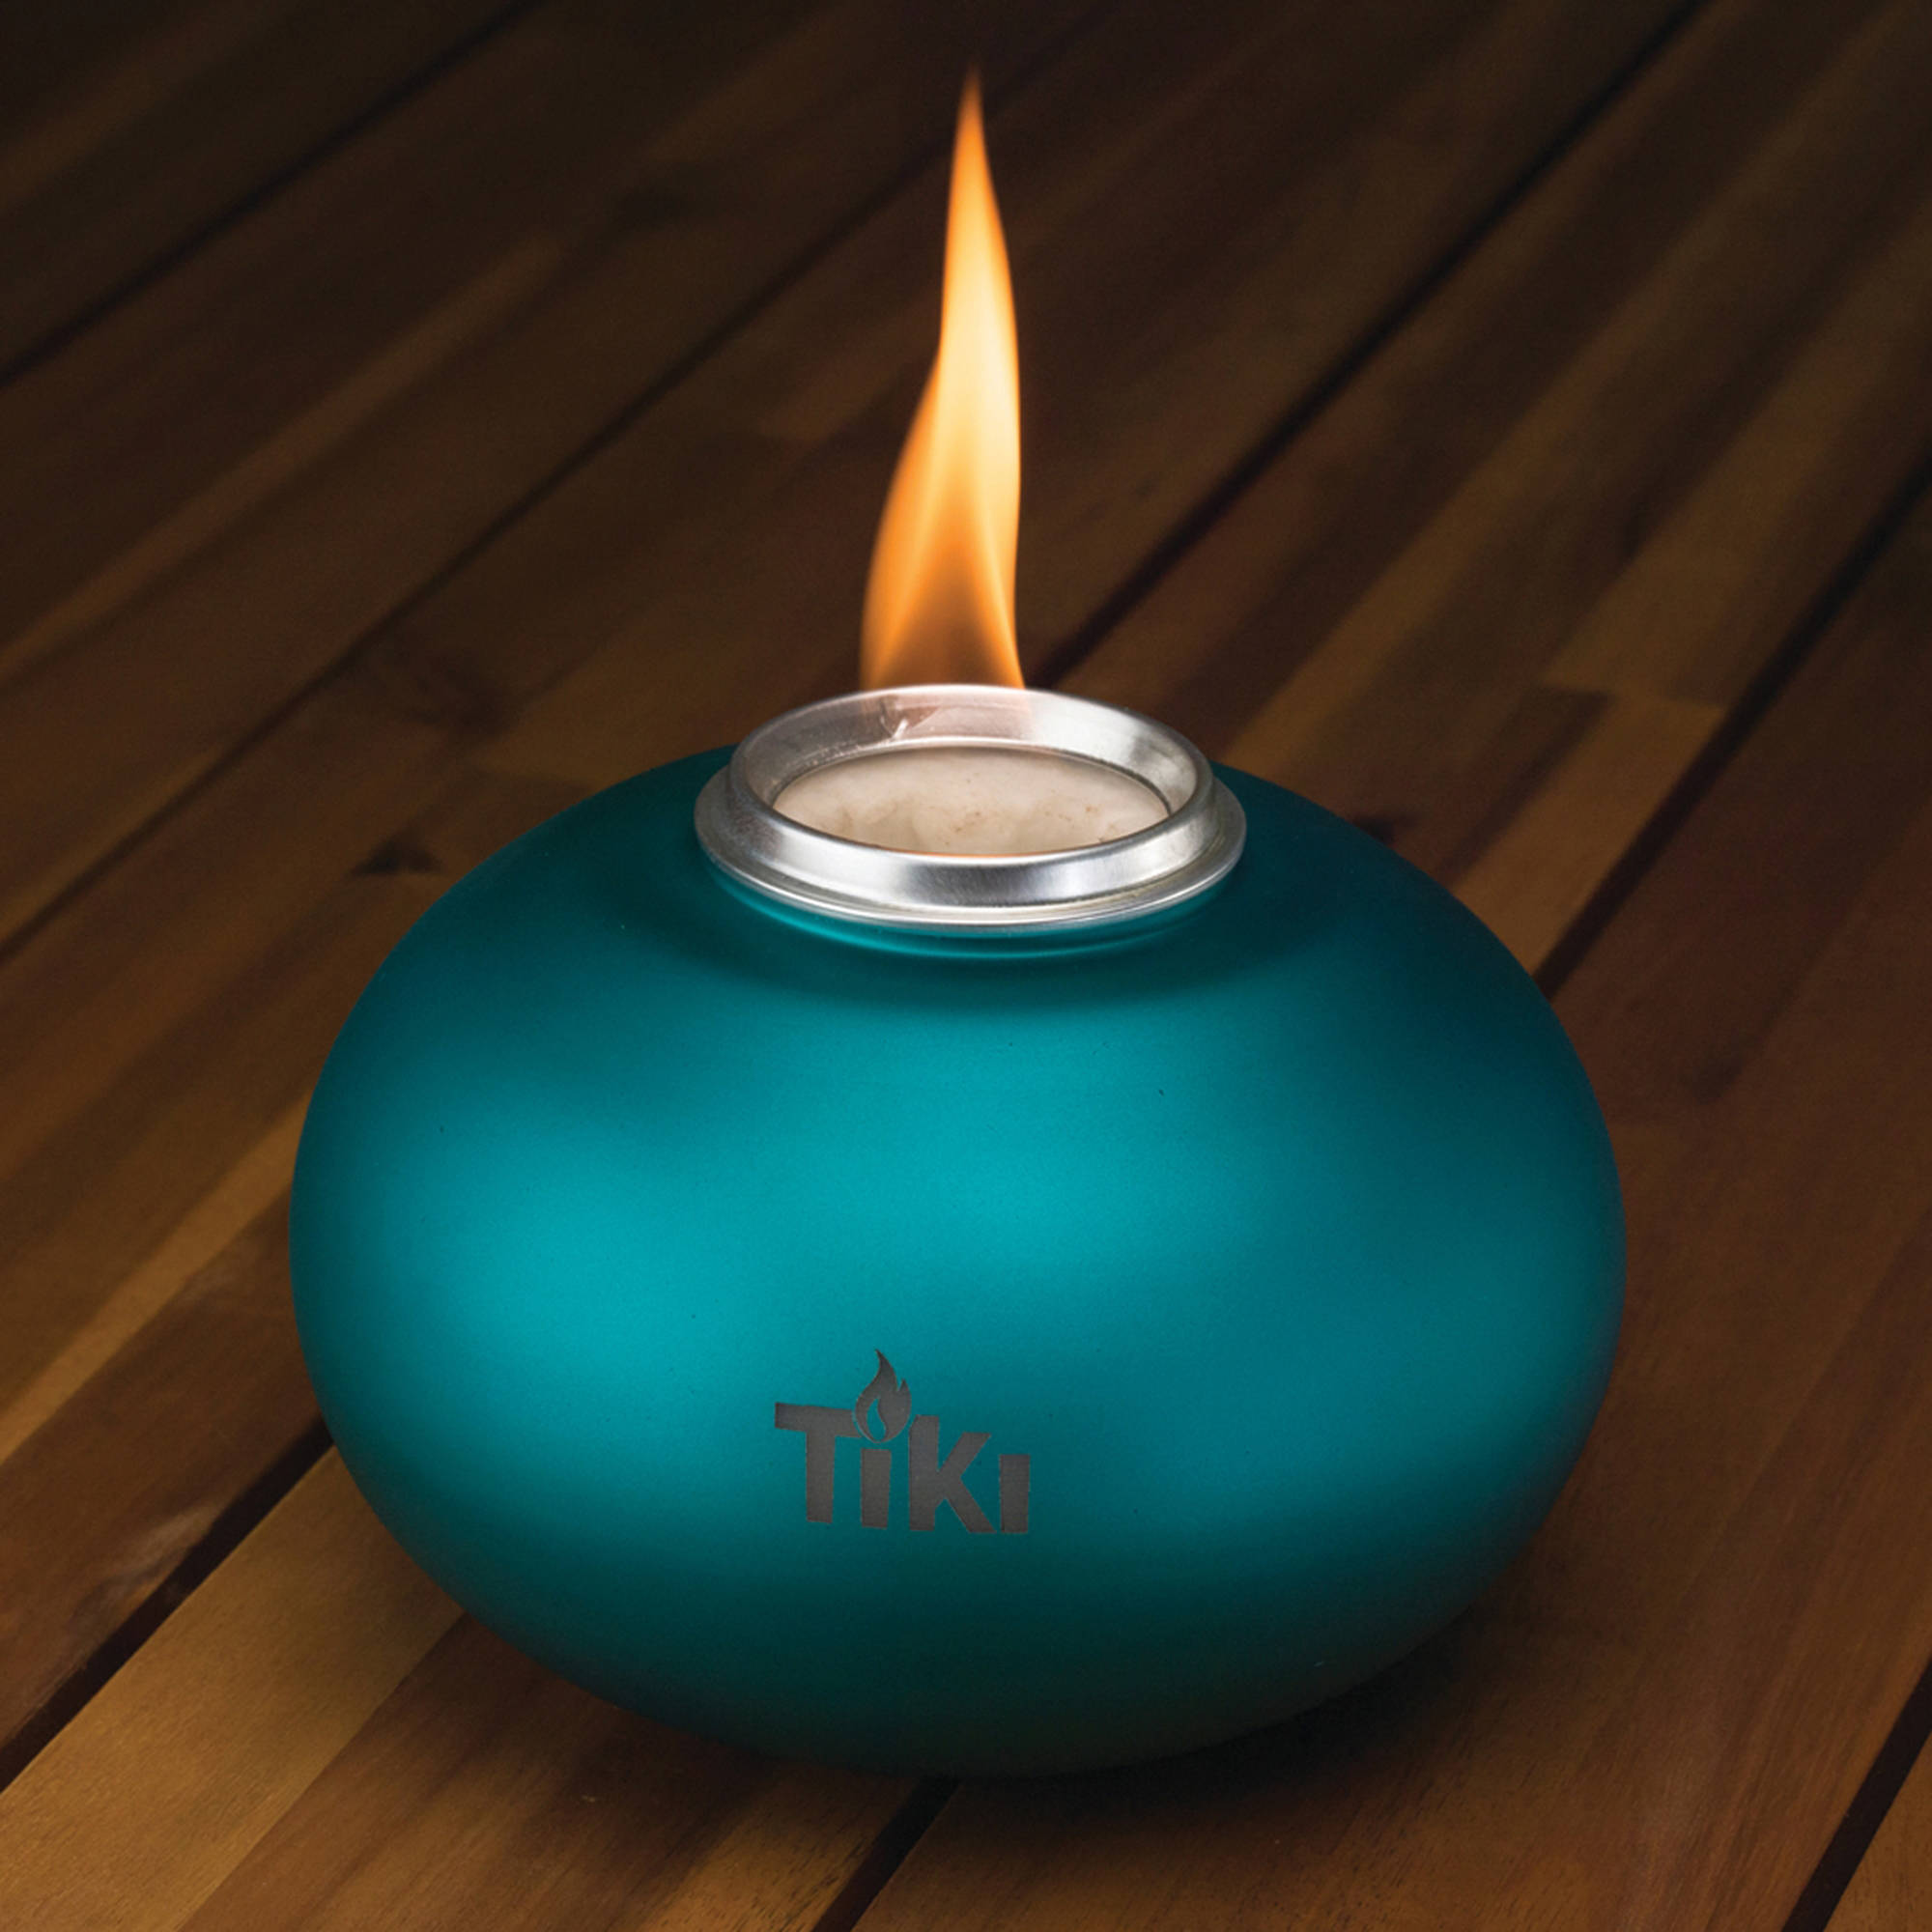 TIKI Brand Clean Burn Pearl of the Sea Tabletop Firepiece, Teal